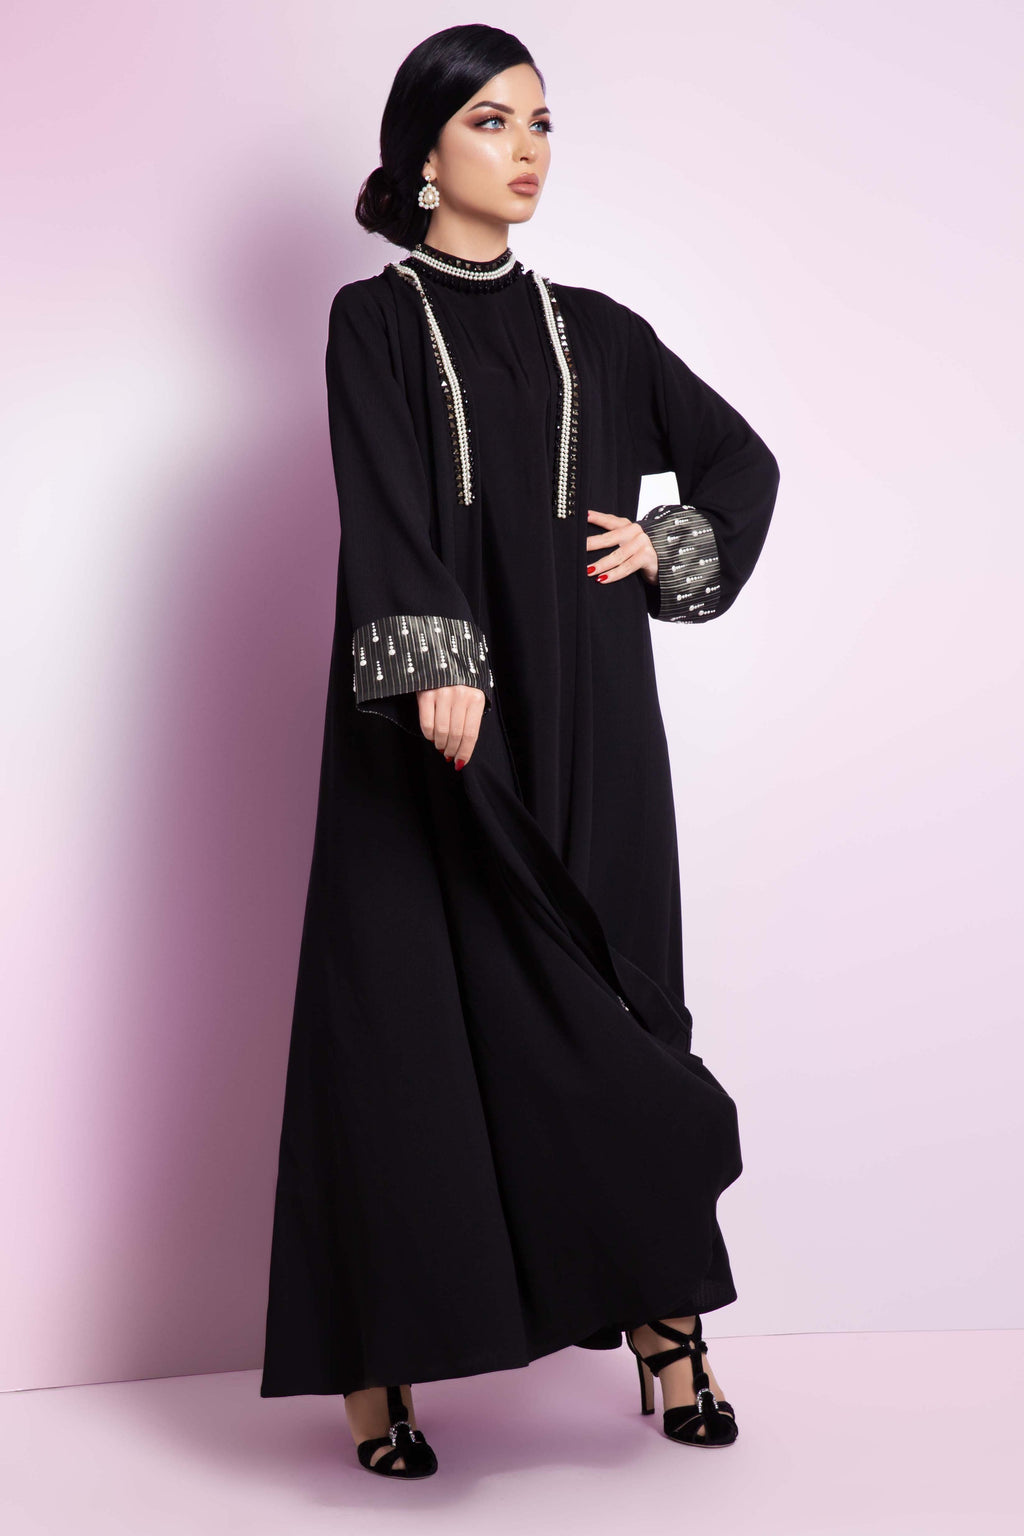 BLACK SWAROVSKI CRYSTALIZED SOALON ABAYA.